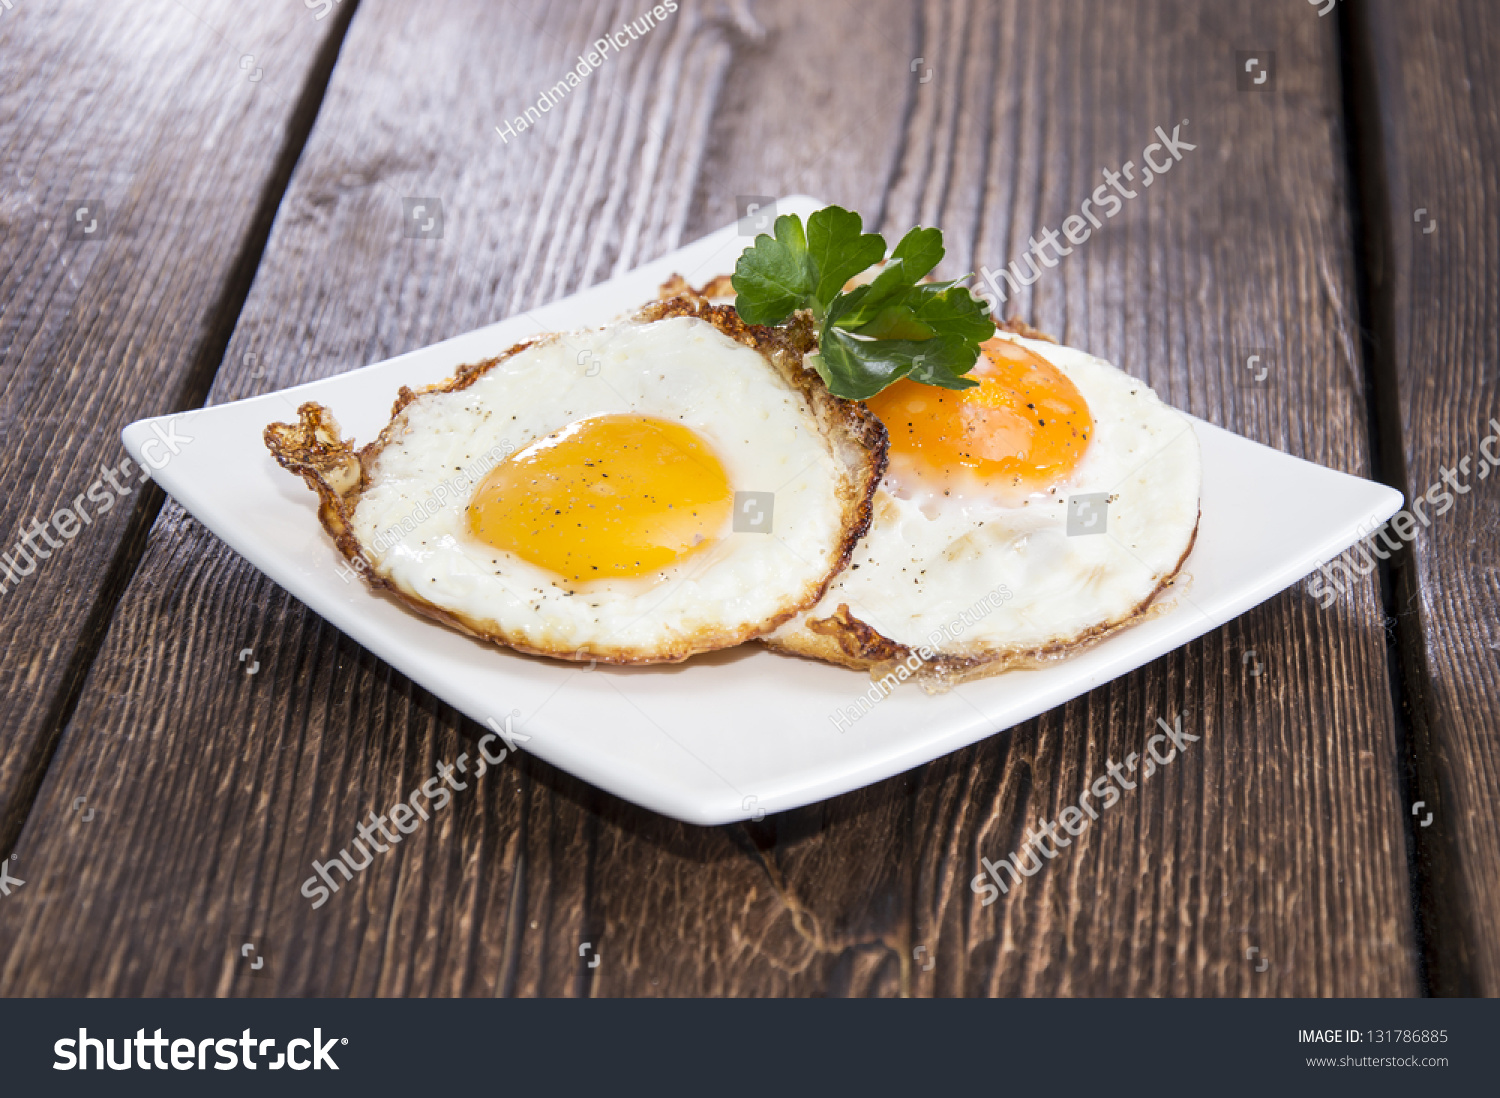 Fried eggs on plate. Putting plate with fried eggs on ...  |Fried Eggs On A Plate